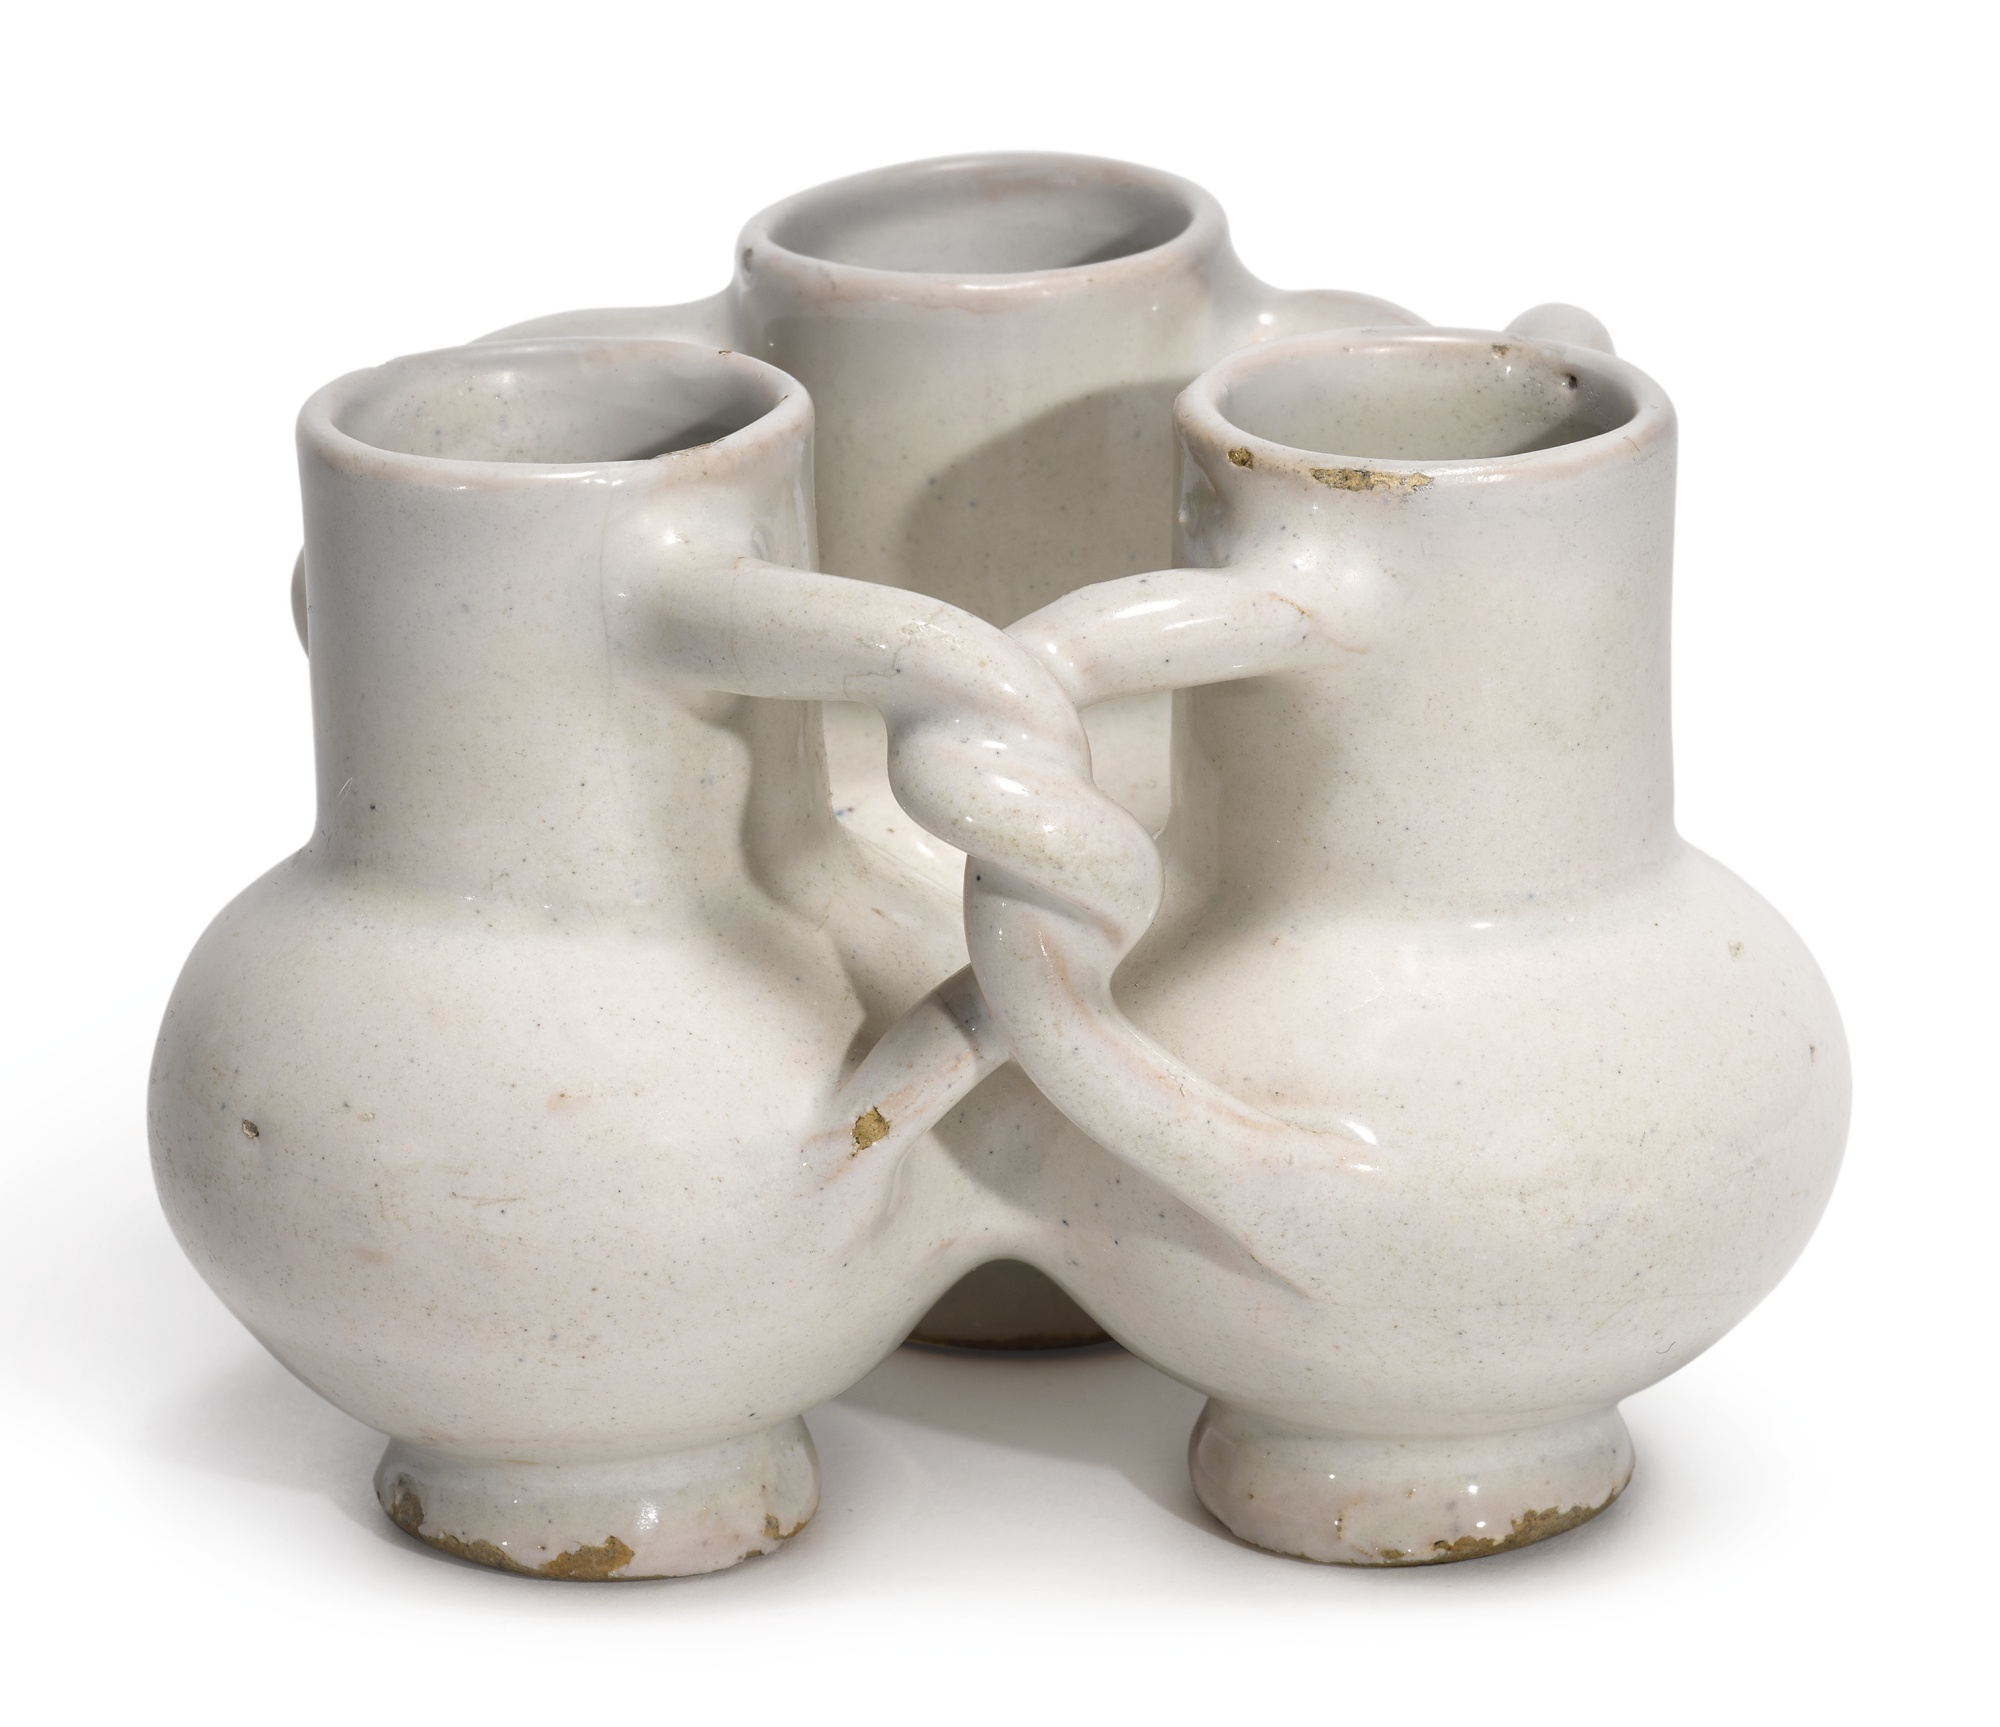 A white delftware fuddling cup made in London and dating to the mid-17th century. It looks like three jugs in one. A trio of identical vessels with bulging bodies are bound together, back to back to back, by entwined handles. The three are undecorated.